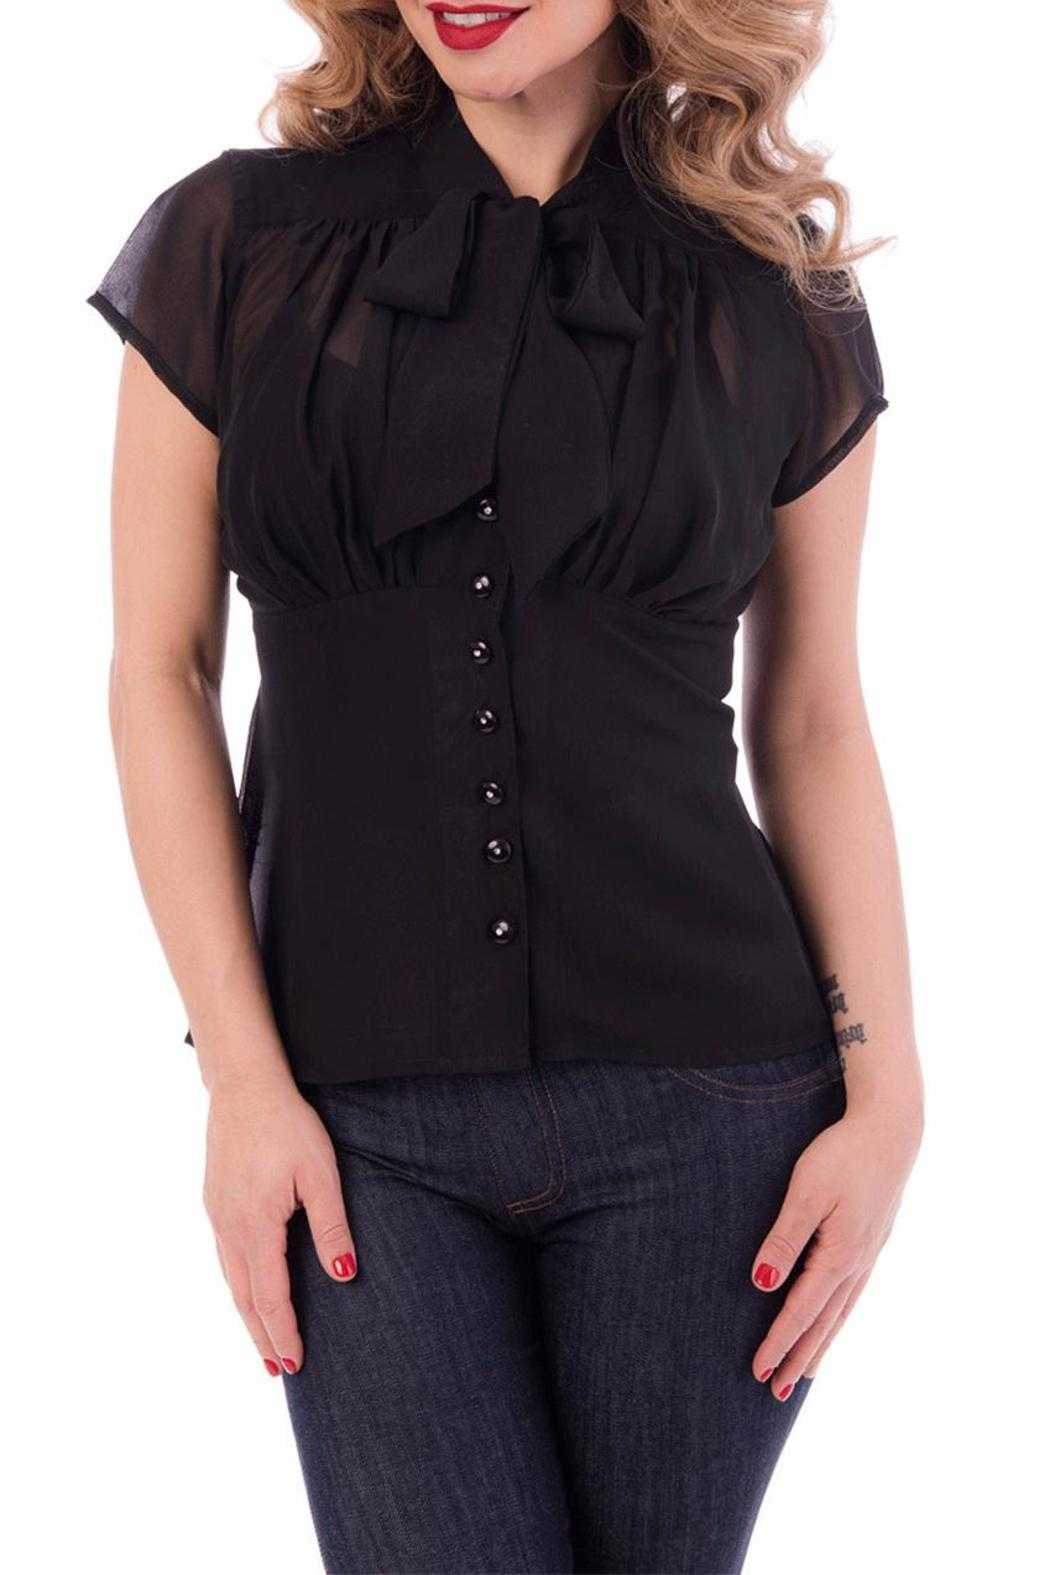 Steady Clothing Chiffon Tie Top - Main Image